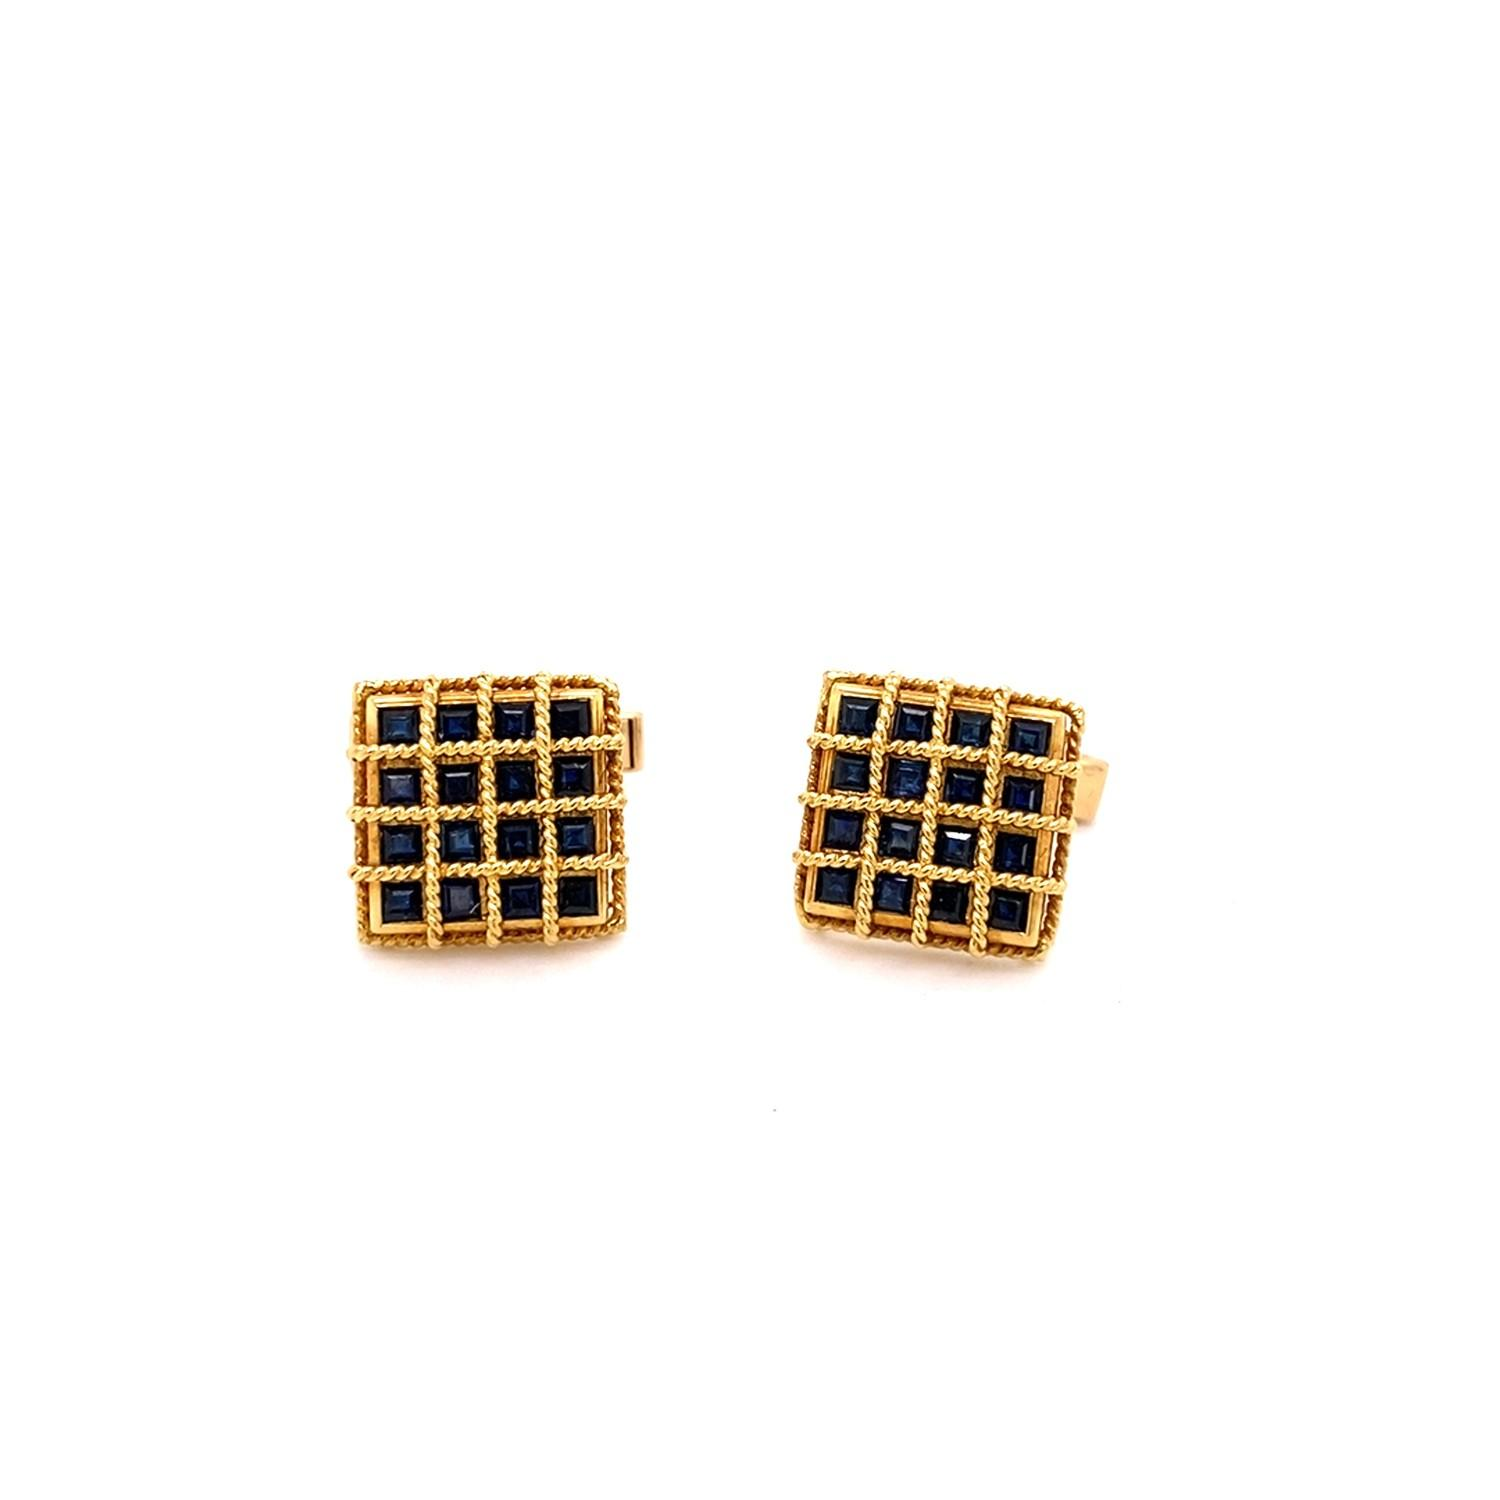 A pair of Vintage Kutchinsky pave set Sapphire Cufflinks mounted in 18ct yellow gold. Kutchinsky, - Image 2 of 4